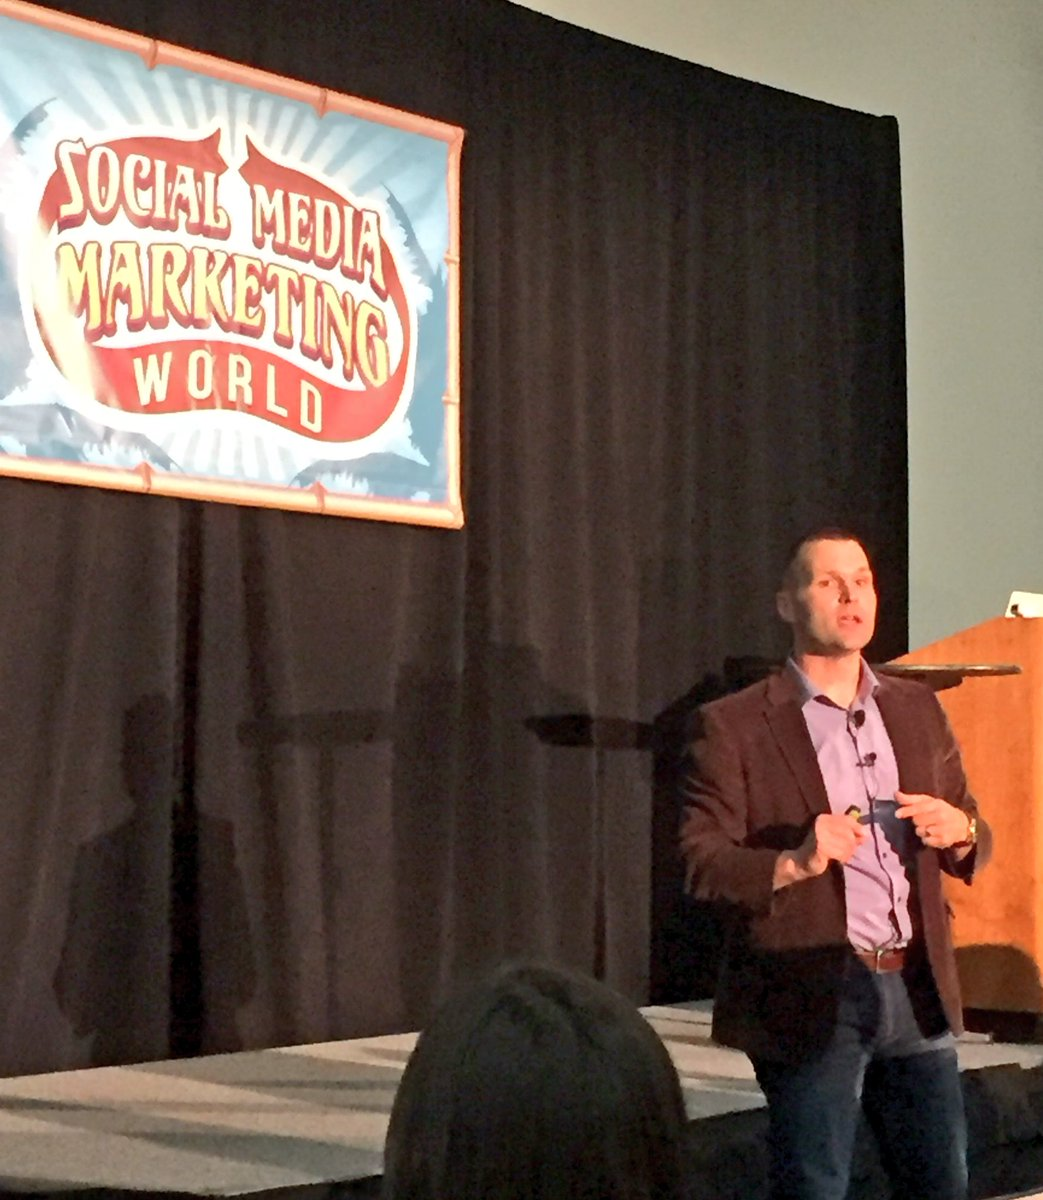 ROAR!!! @TheSalesLion presents 7 Qualities of Outrageously Successful Companies Using #ContentMarketing #smmw16 https://t.co/sgo1XV6hSY